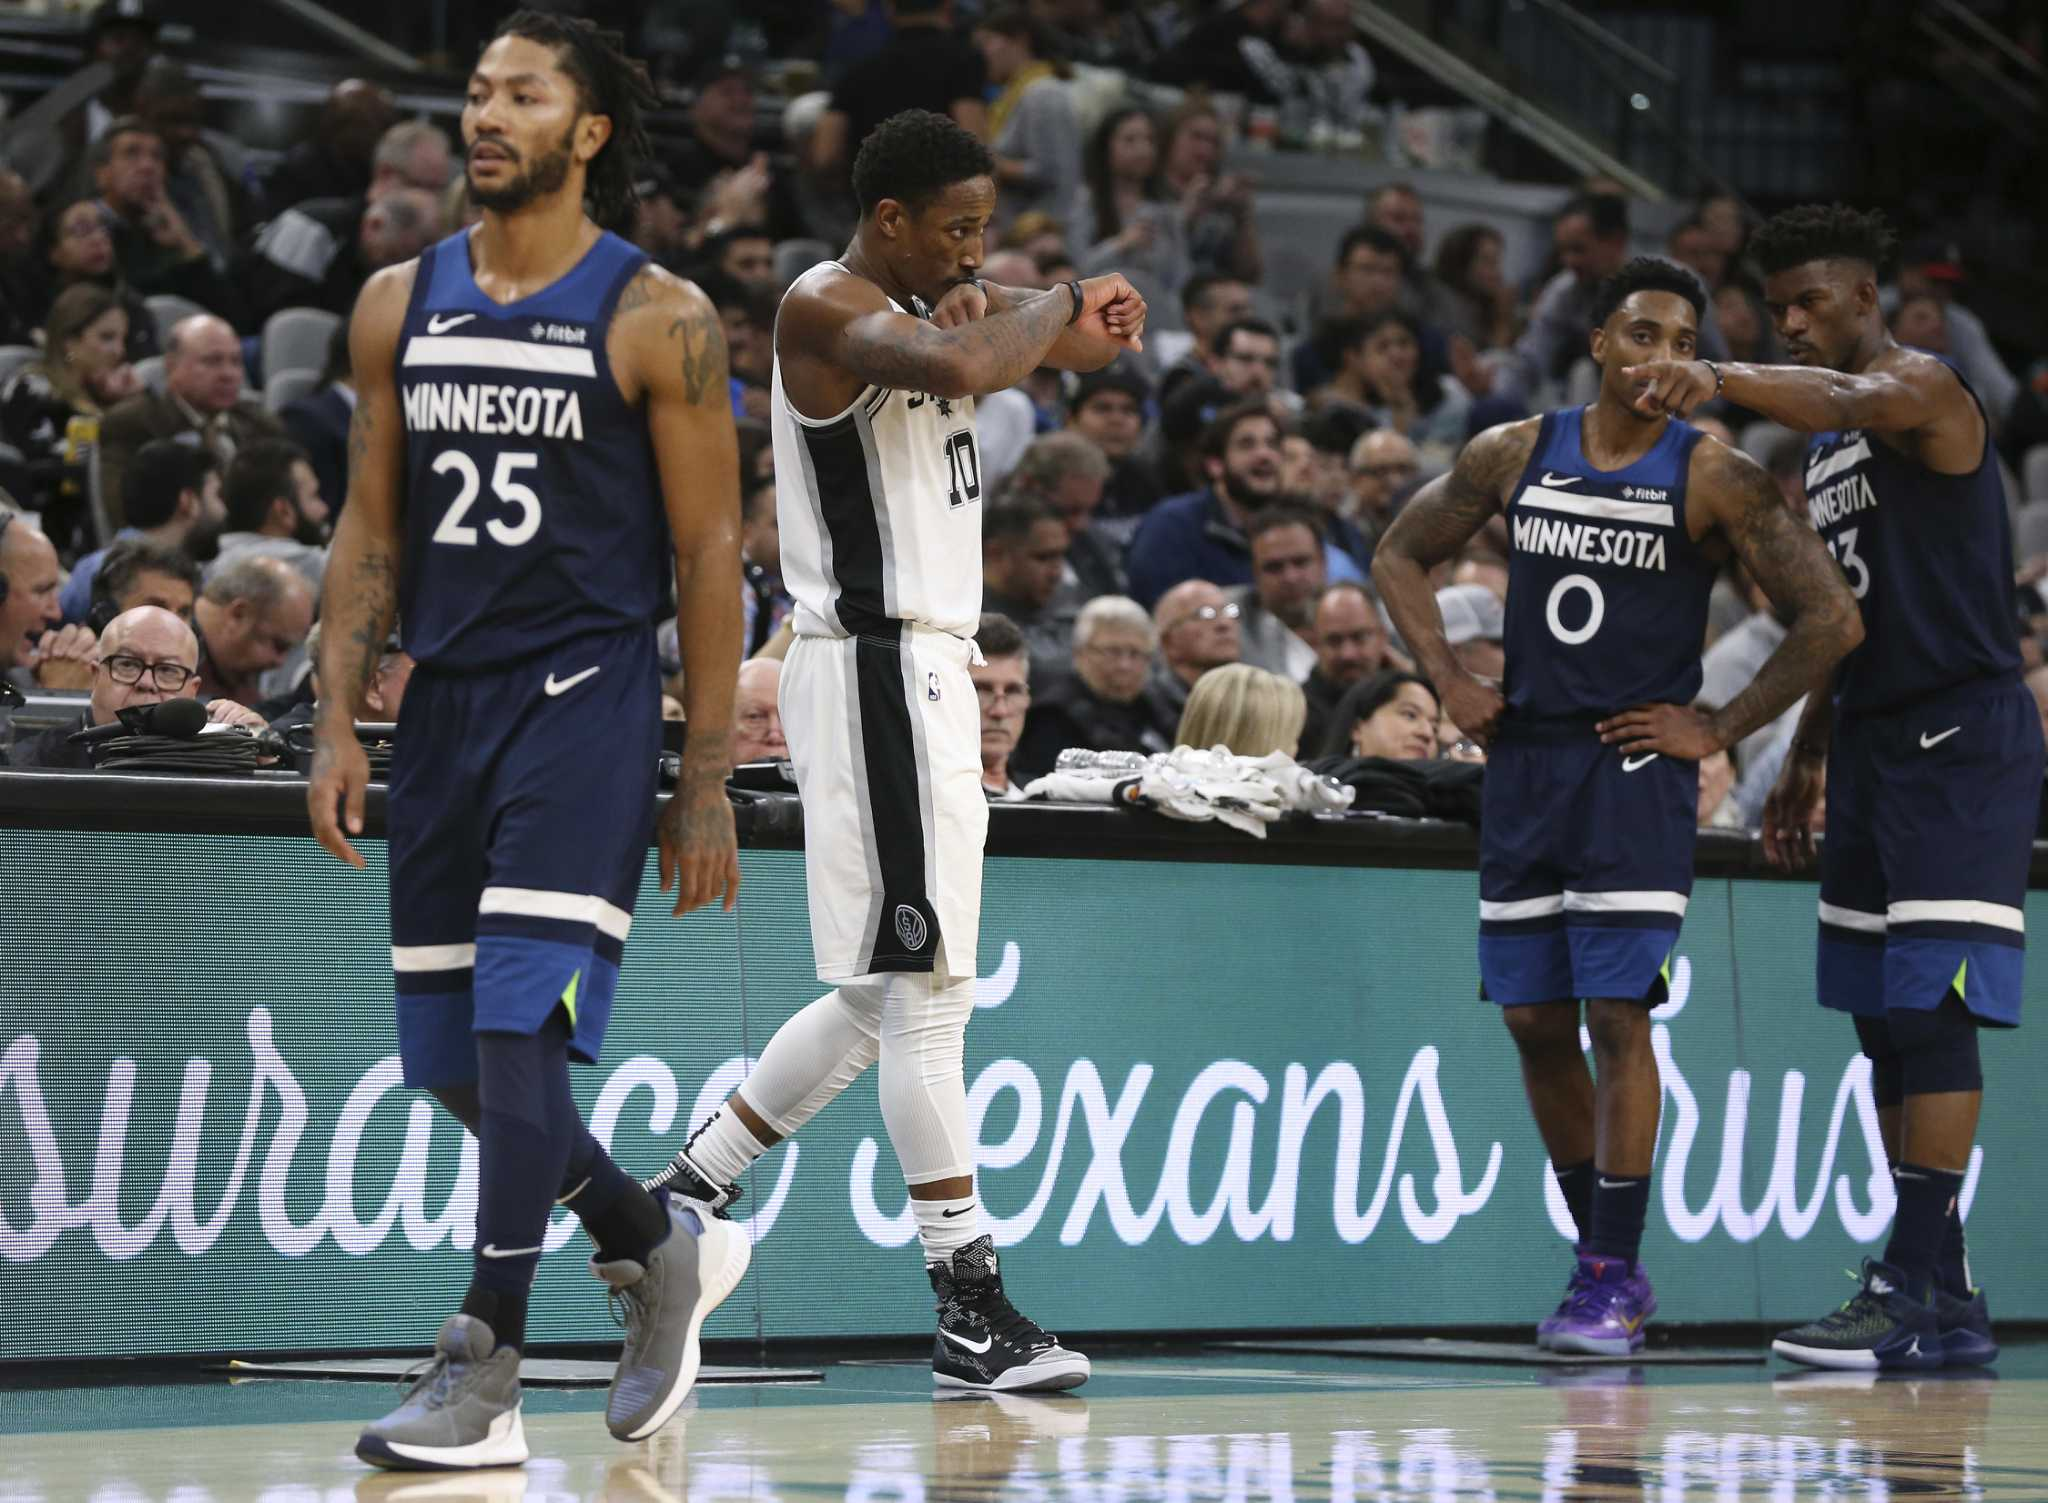 Same song, new verse: Spurs win opening night shootout